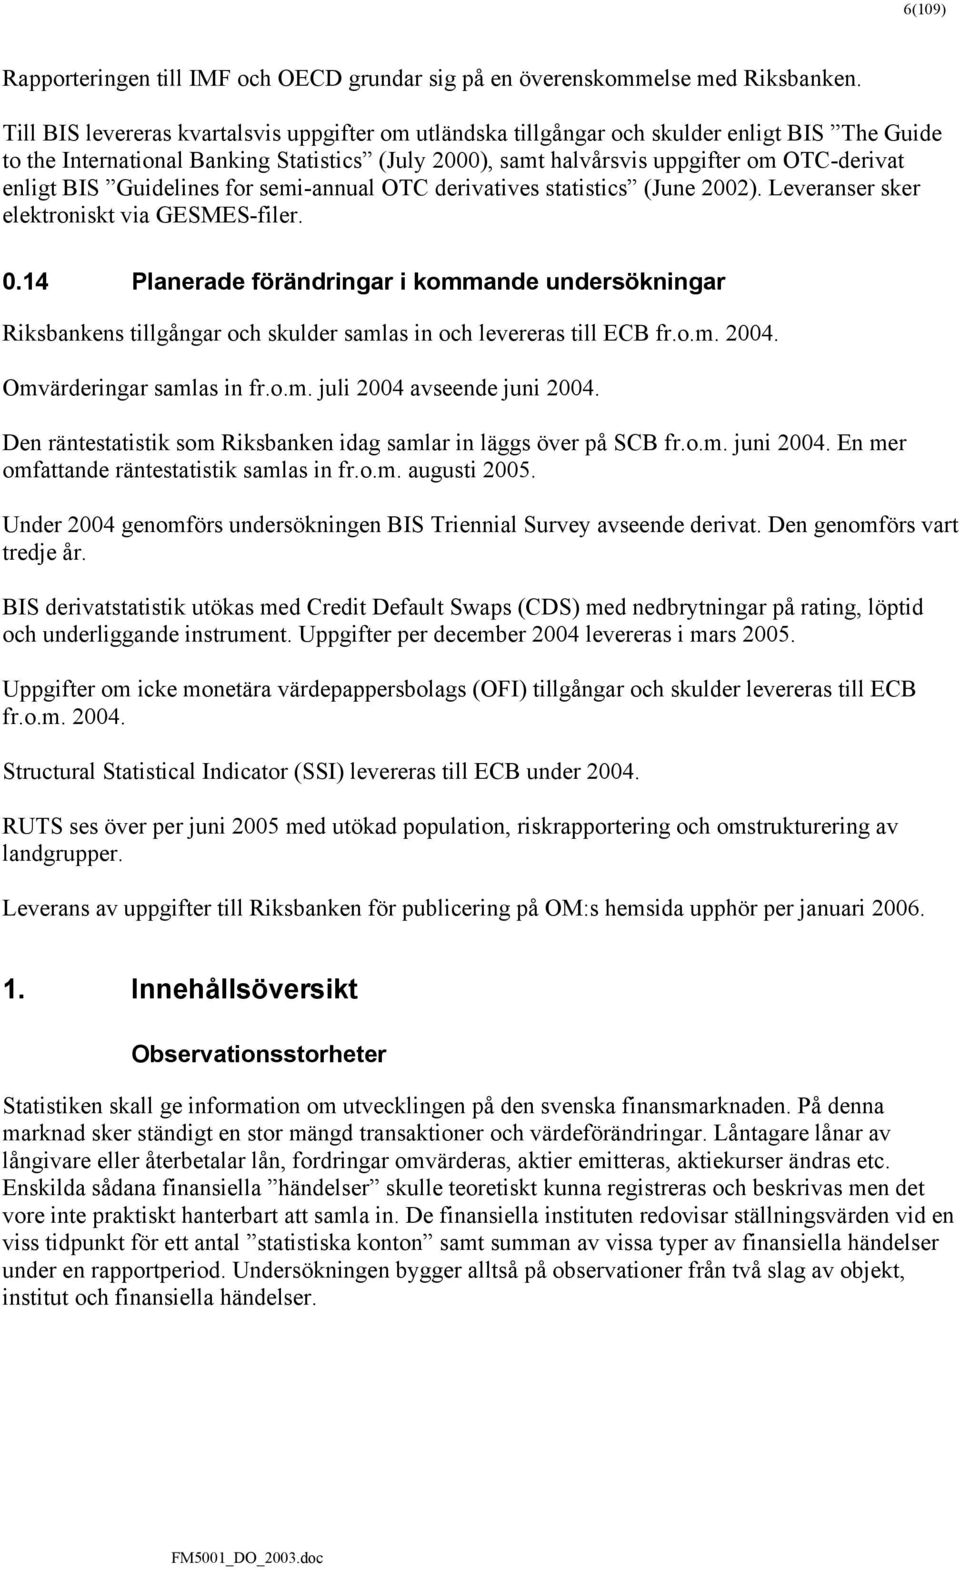 BIS Guidelines for semi-annual OTC derivatives statistics (June 2002). Leveranser sker elektroniskt via GESMES-filer. 0.